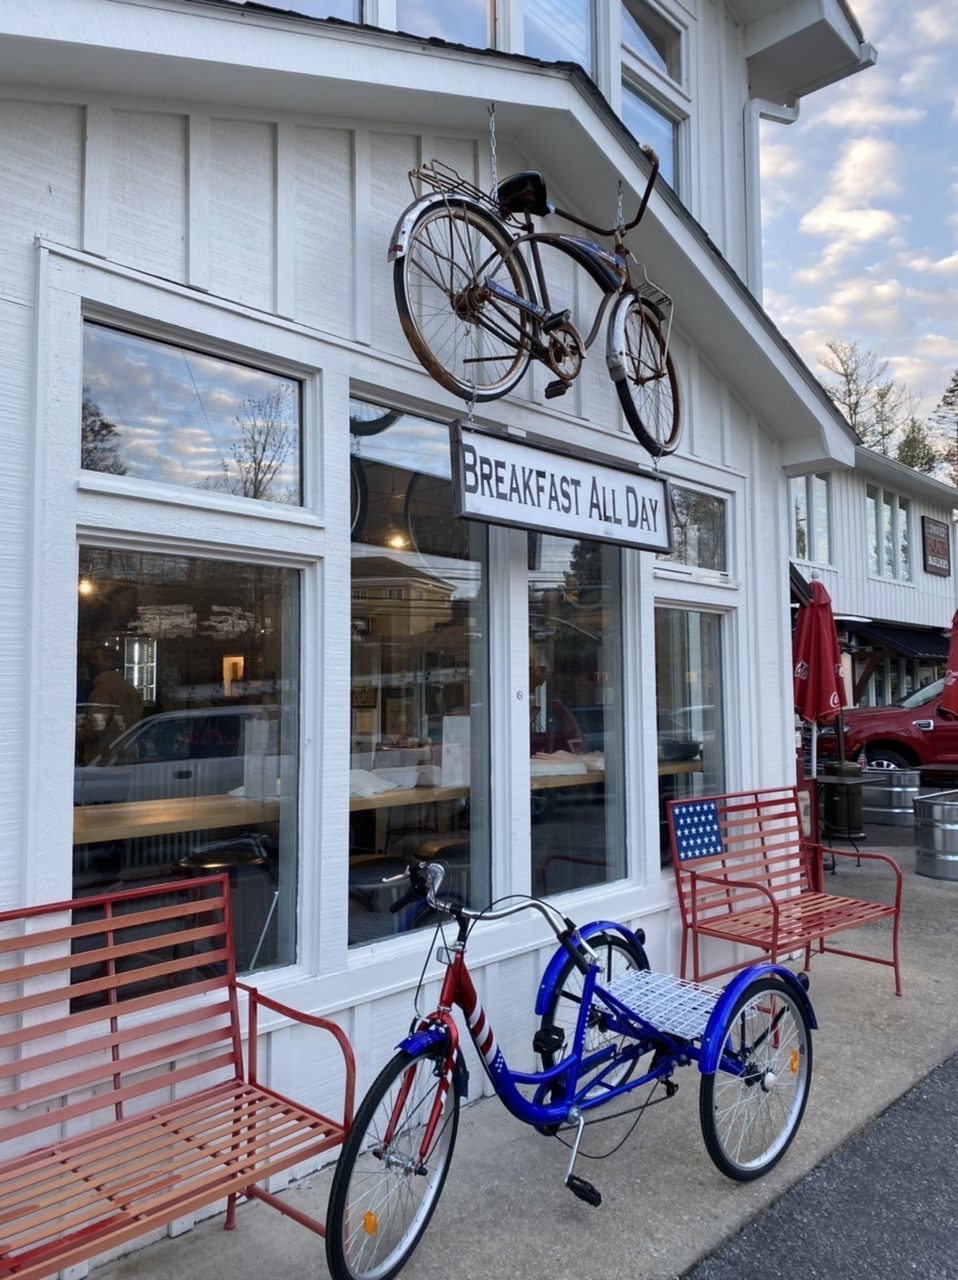 Blue Bicycle Cafe for take out breakfast on the way downtown